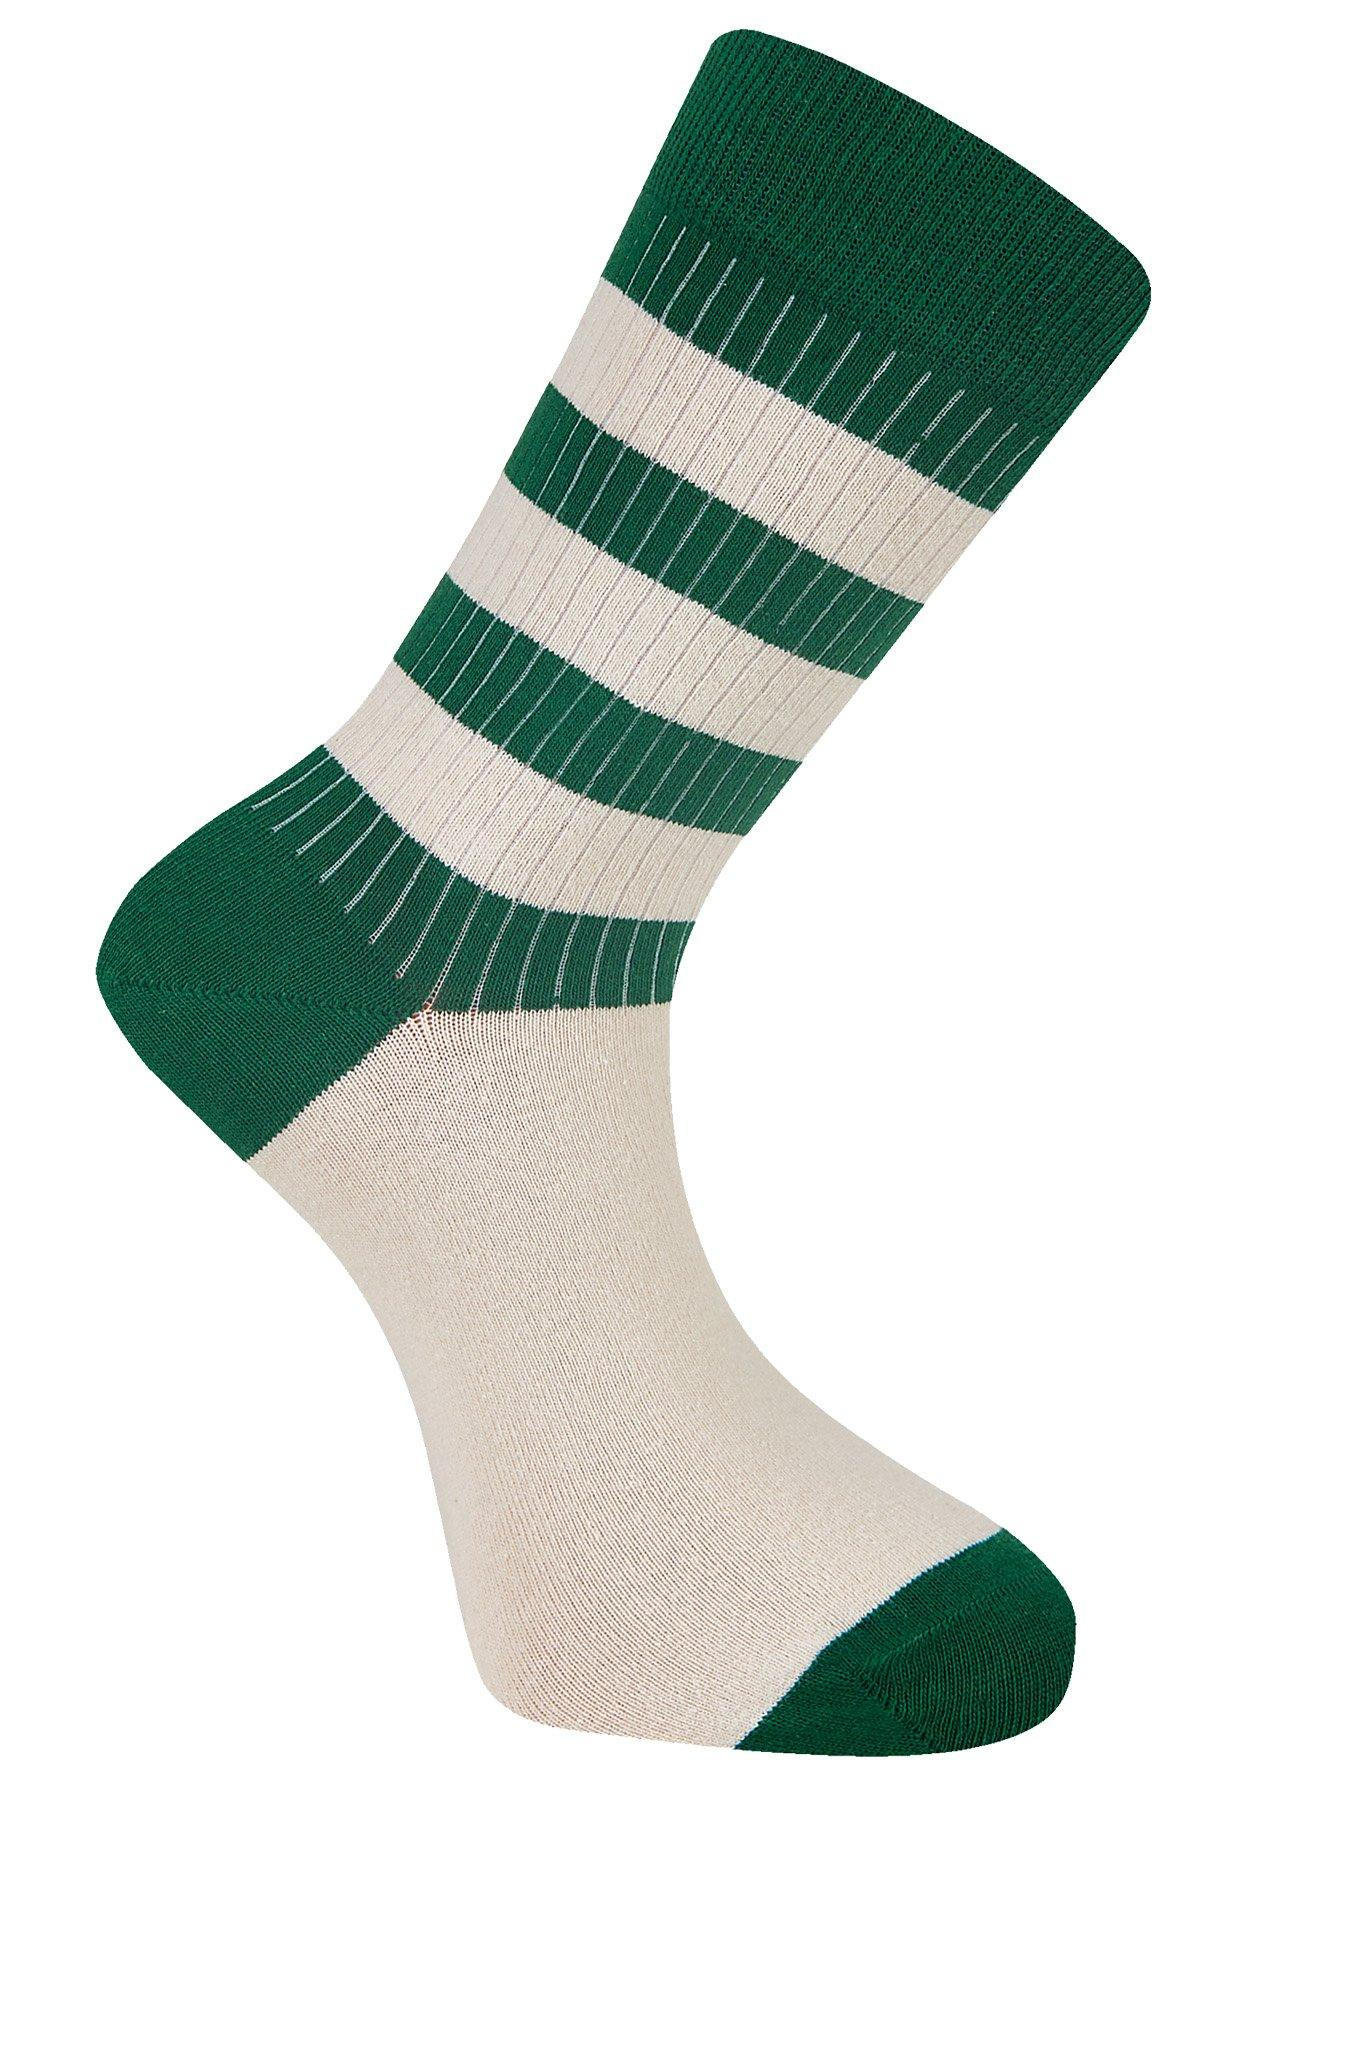 BRETON Emerald Organic Cotton Socks - Komodo Fashion